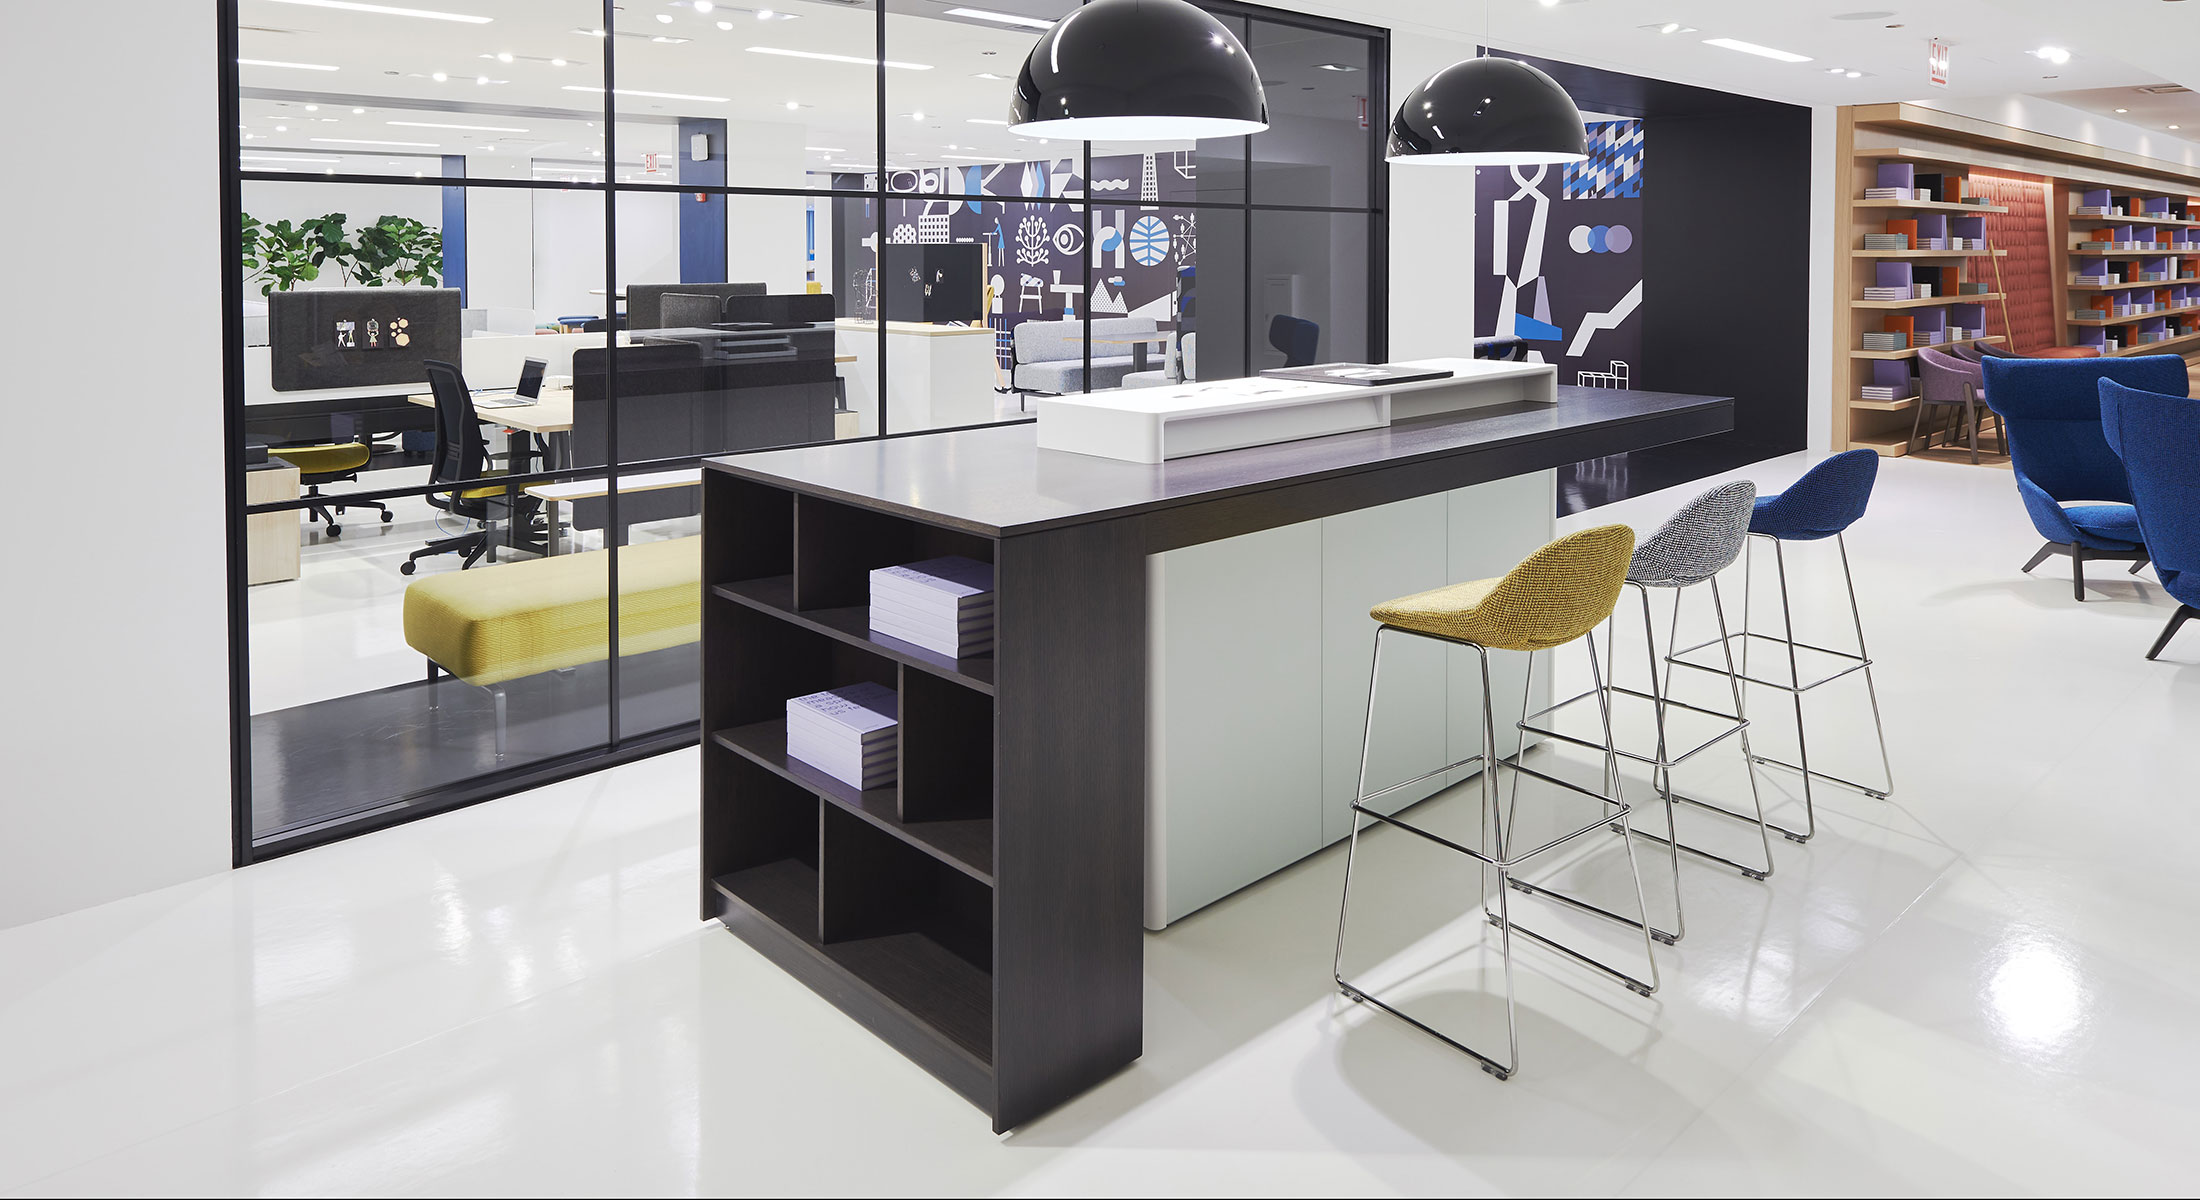 As The Function Of Reception Desks And The Act Of Receiving Guests Evolves So Do Reception Needs Of Different Businesses Teknion Reception Takes An Innovative Design Approach From Classic To Communal